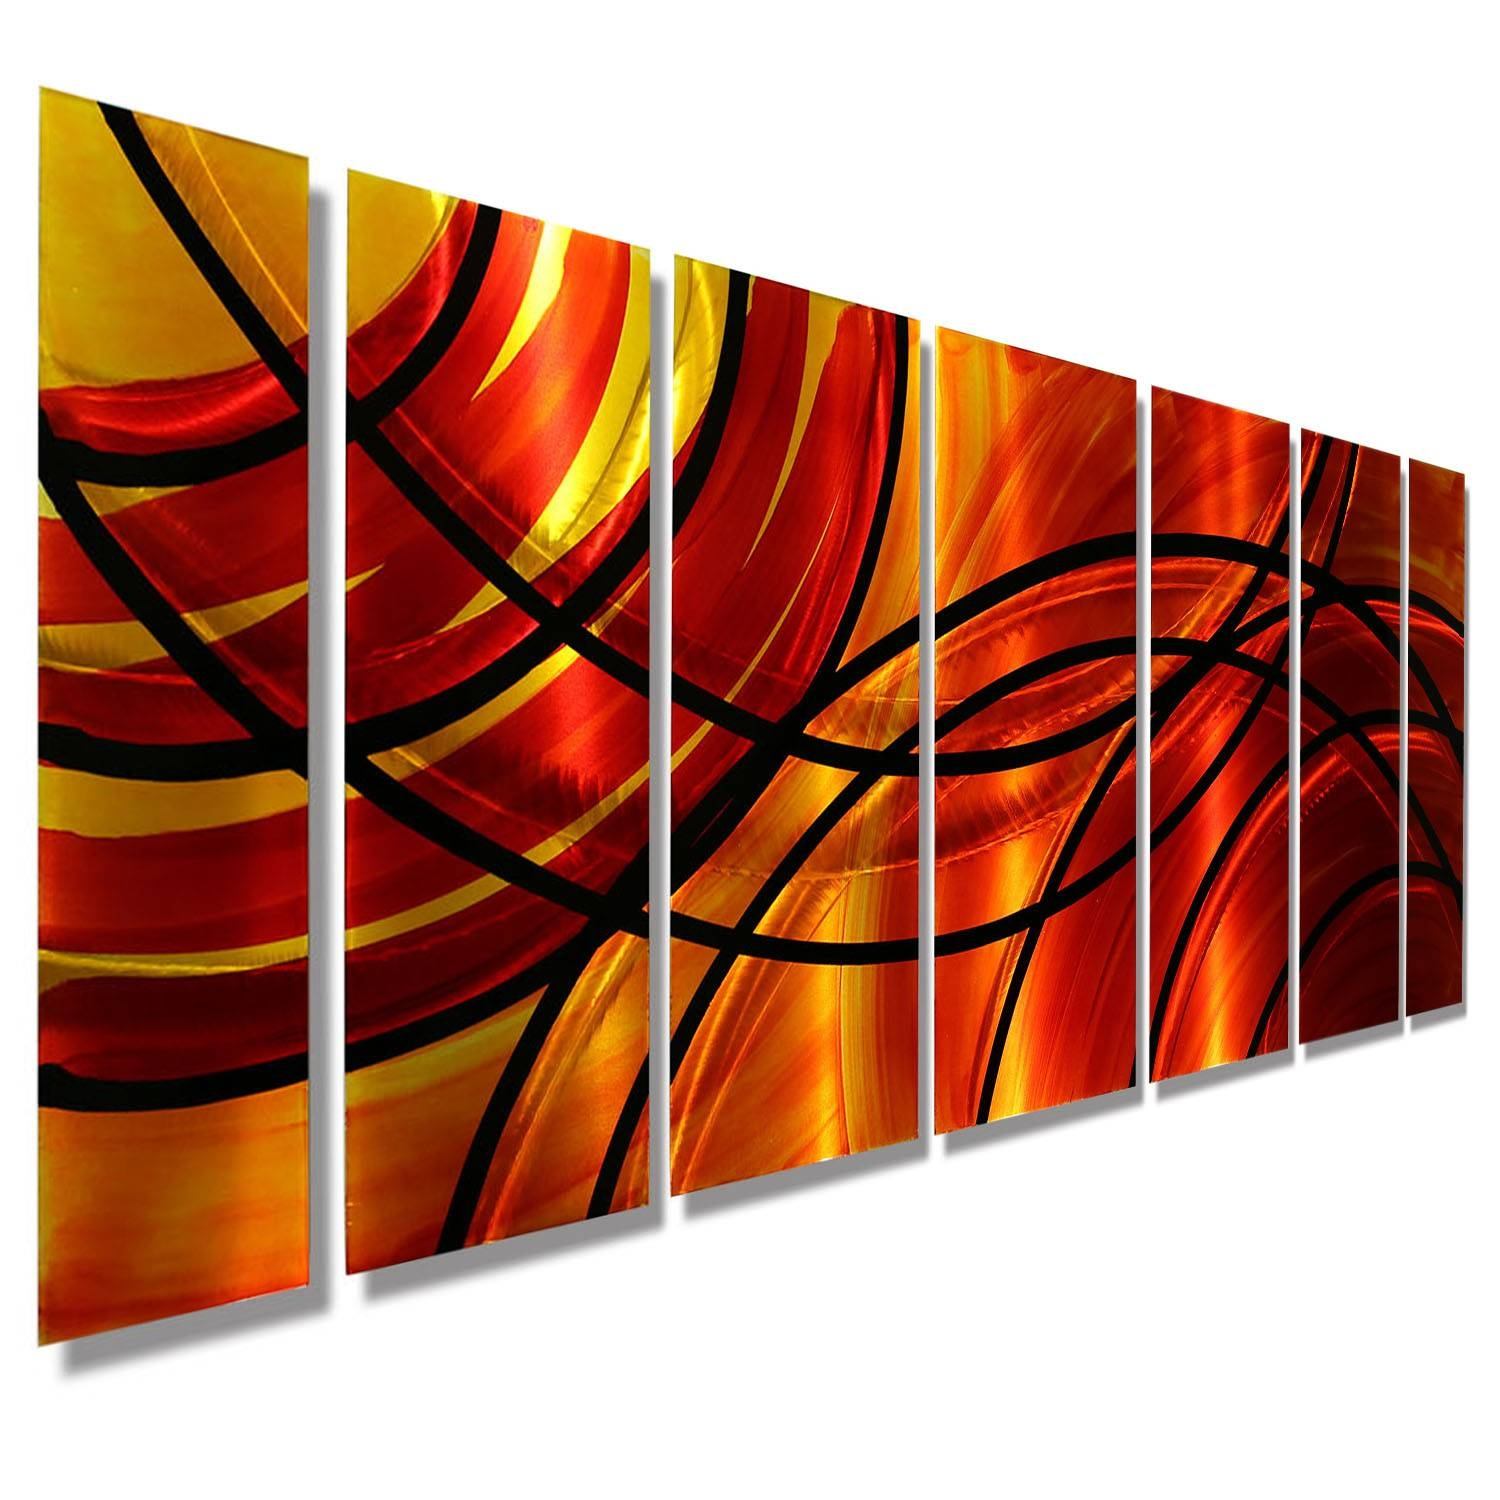 Boundfire – Red & Orange Modern Metal Wall Artjon Allen With Regard To Current Large Contemporary Wall Art (View 3 of 20)